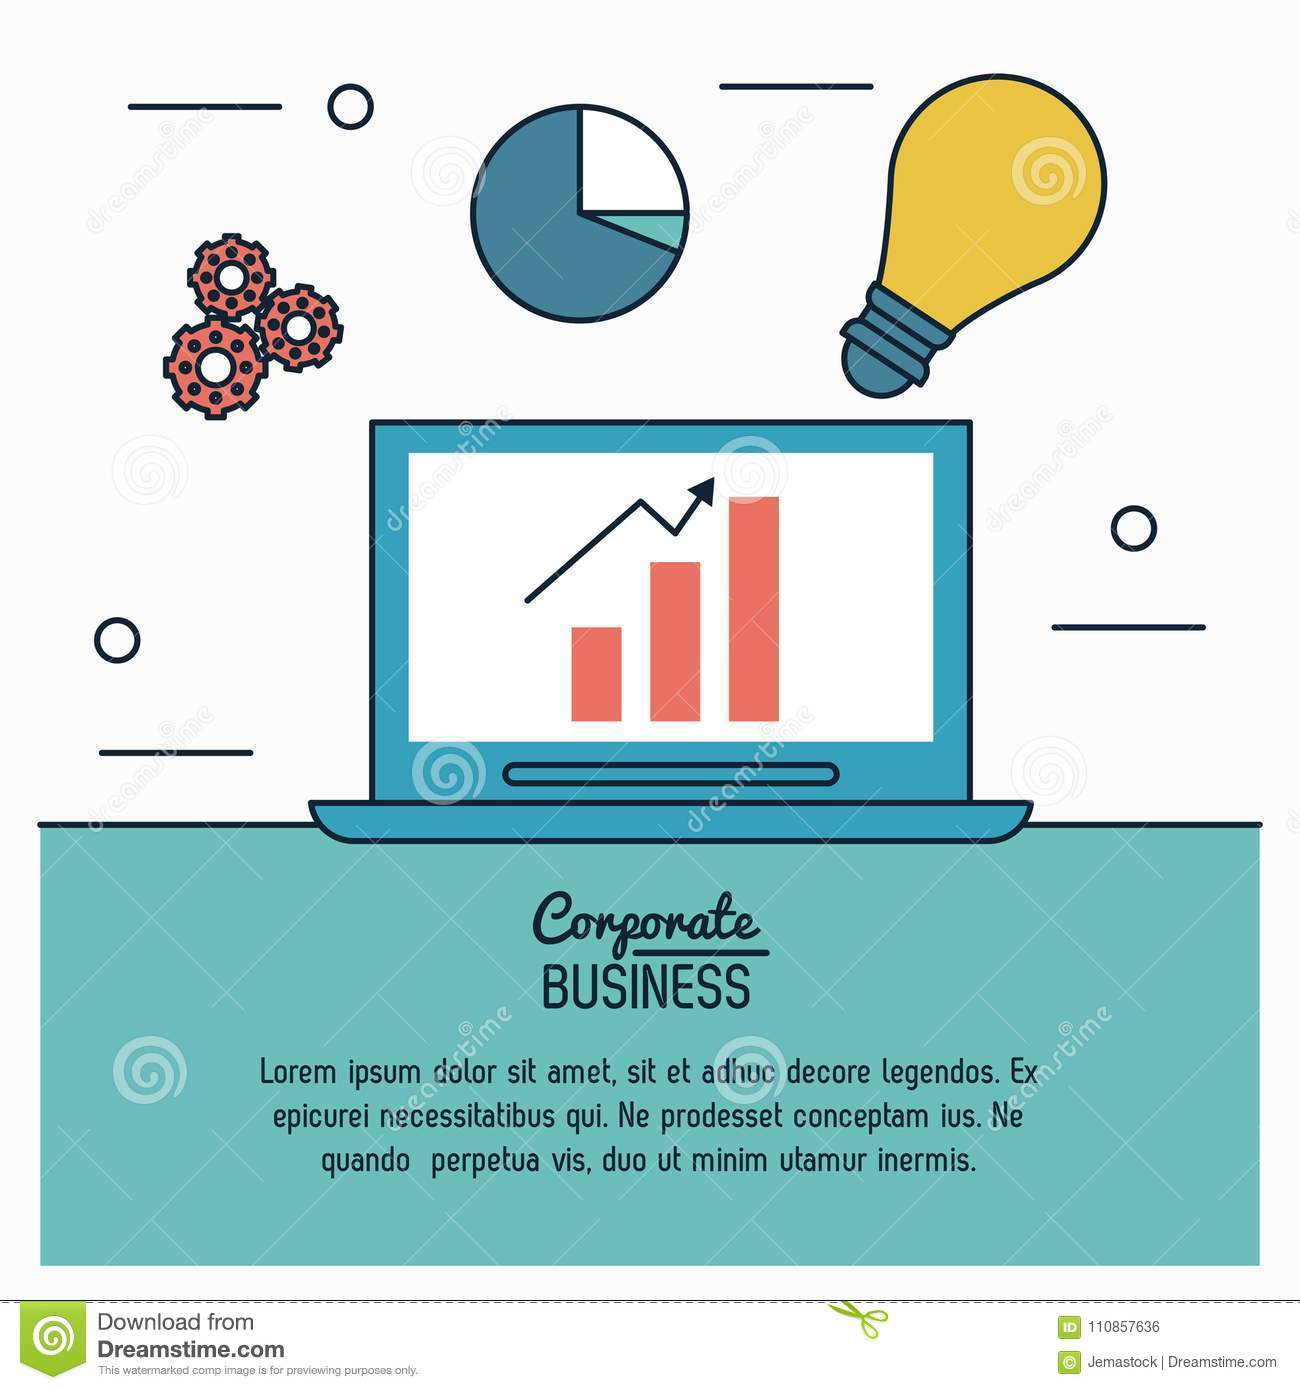 Colorful infographic of corporate business with process idea of economic growing in laptop computer